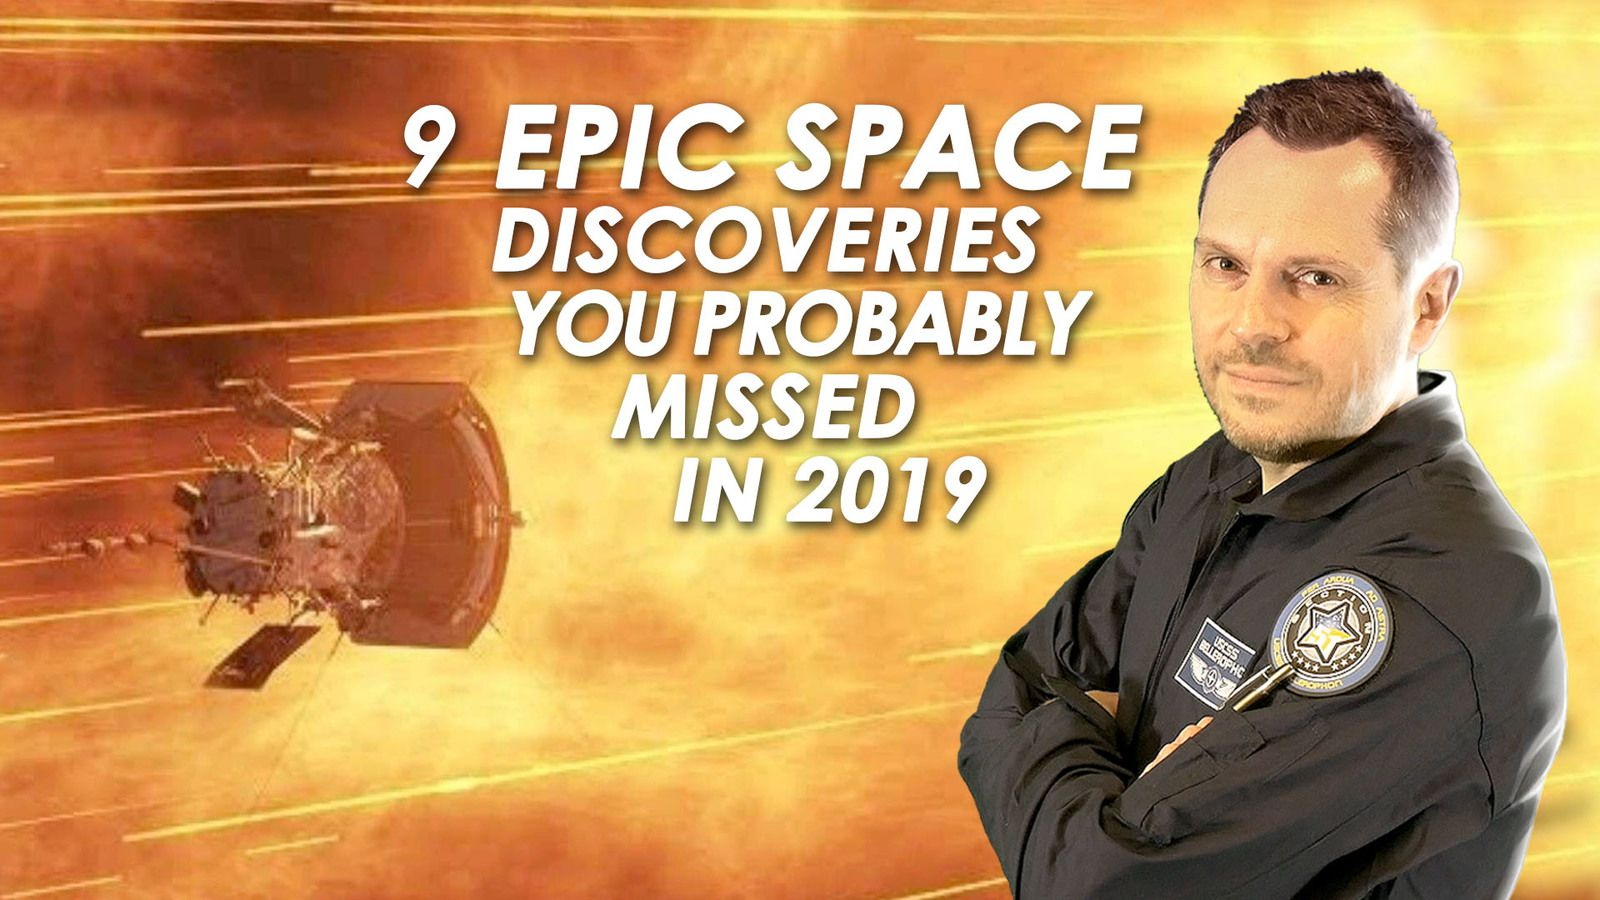 🌠 9 Epic Space Discoveries You Probably Missed In 2019